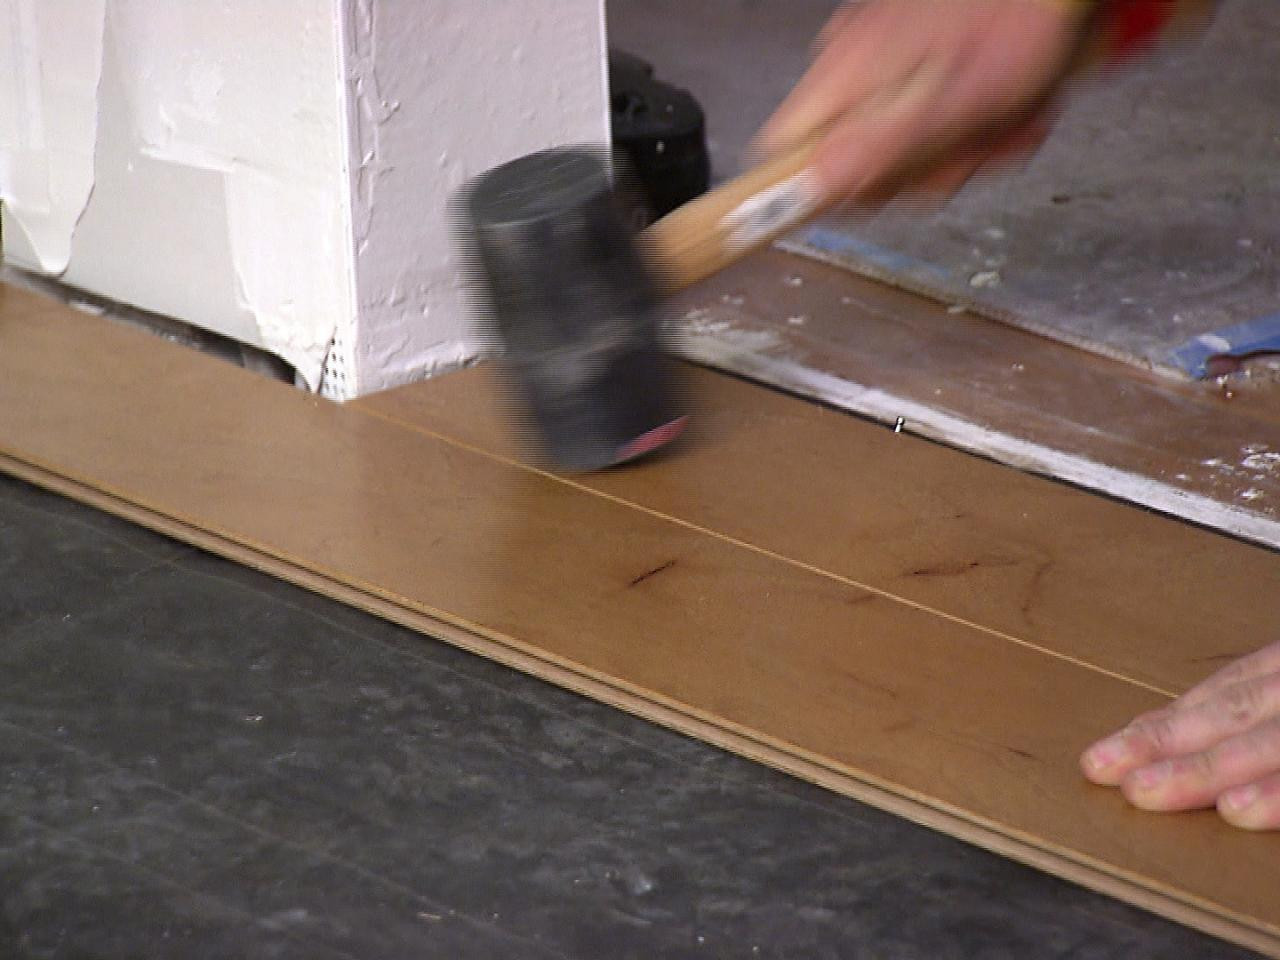 How to Lay Engineered Hardwood Flooring Over Concrete Of Diy Wood Floor Installation Inspirational How to Install An for Diy Wood Floor Installation Inspirational How to Install An Engineered Hardwood Floor How tos